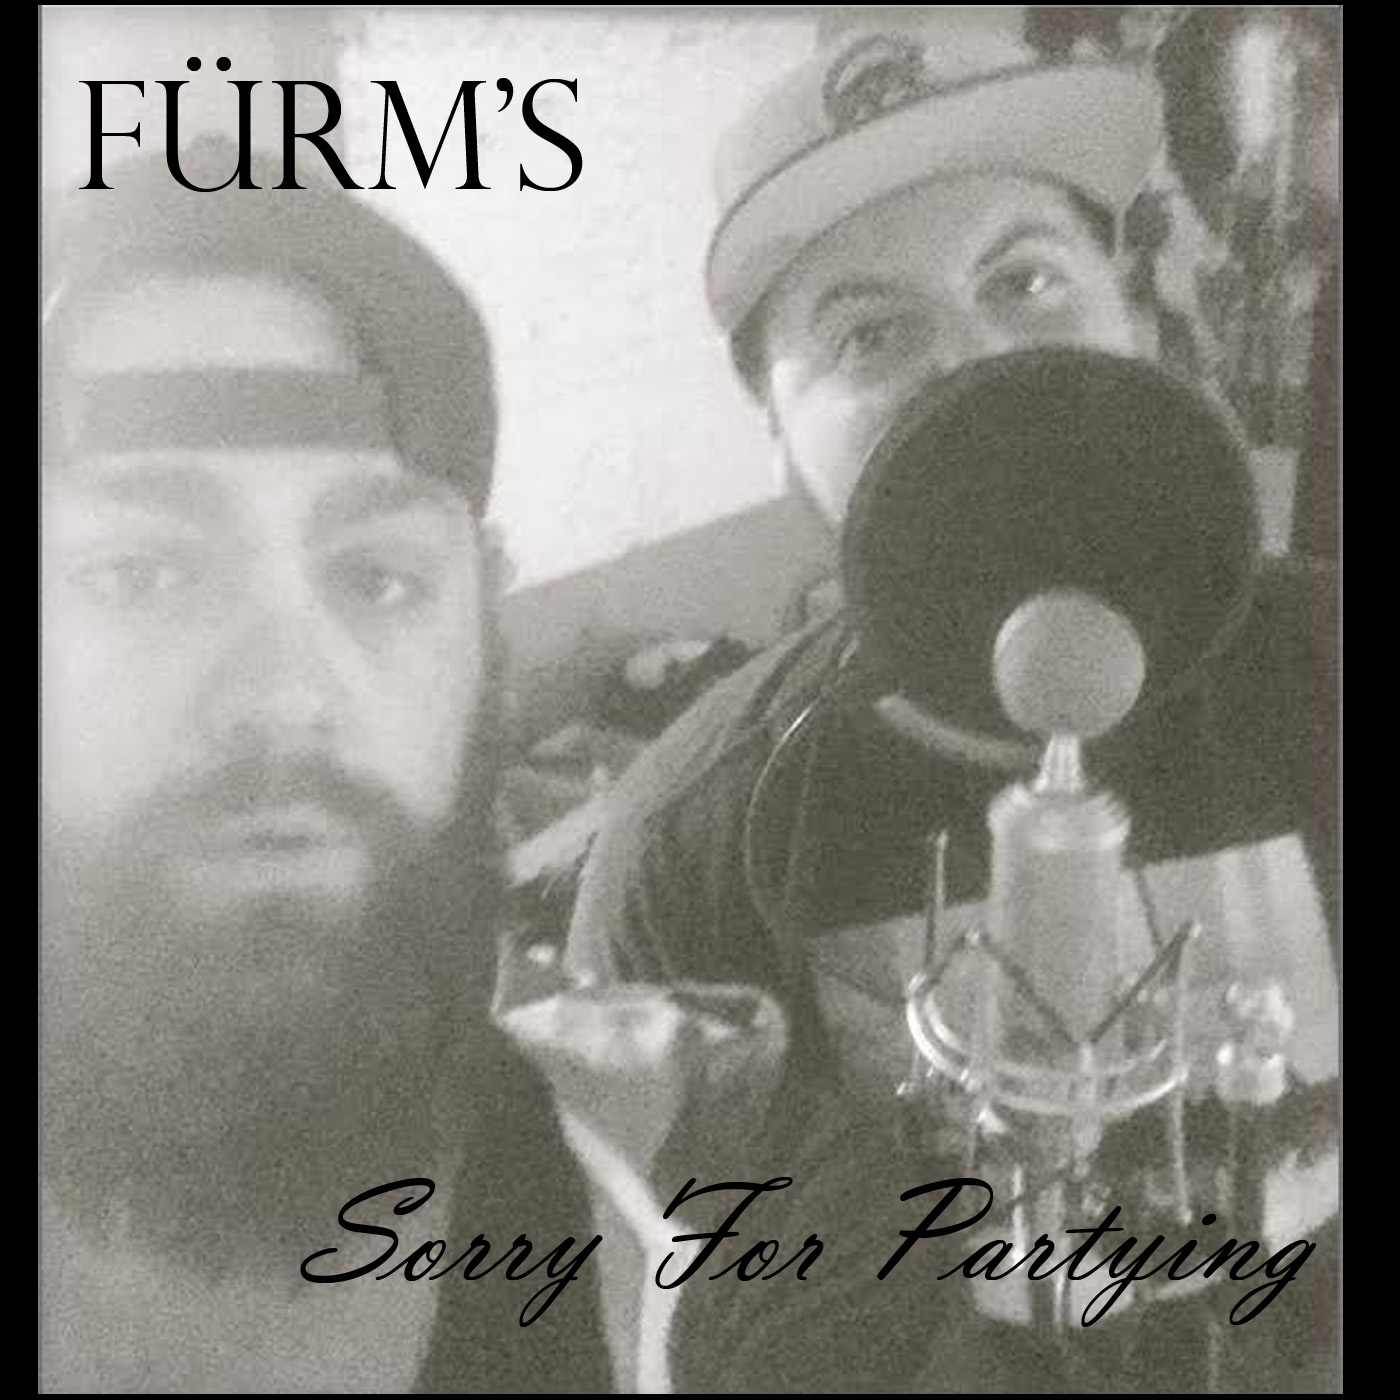 Fürm's Sorry For Partying